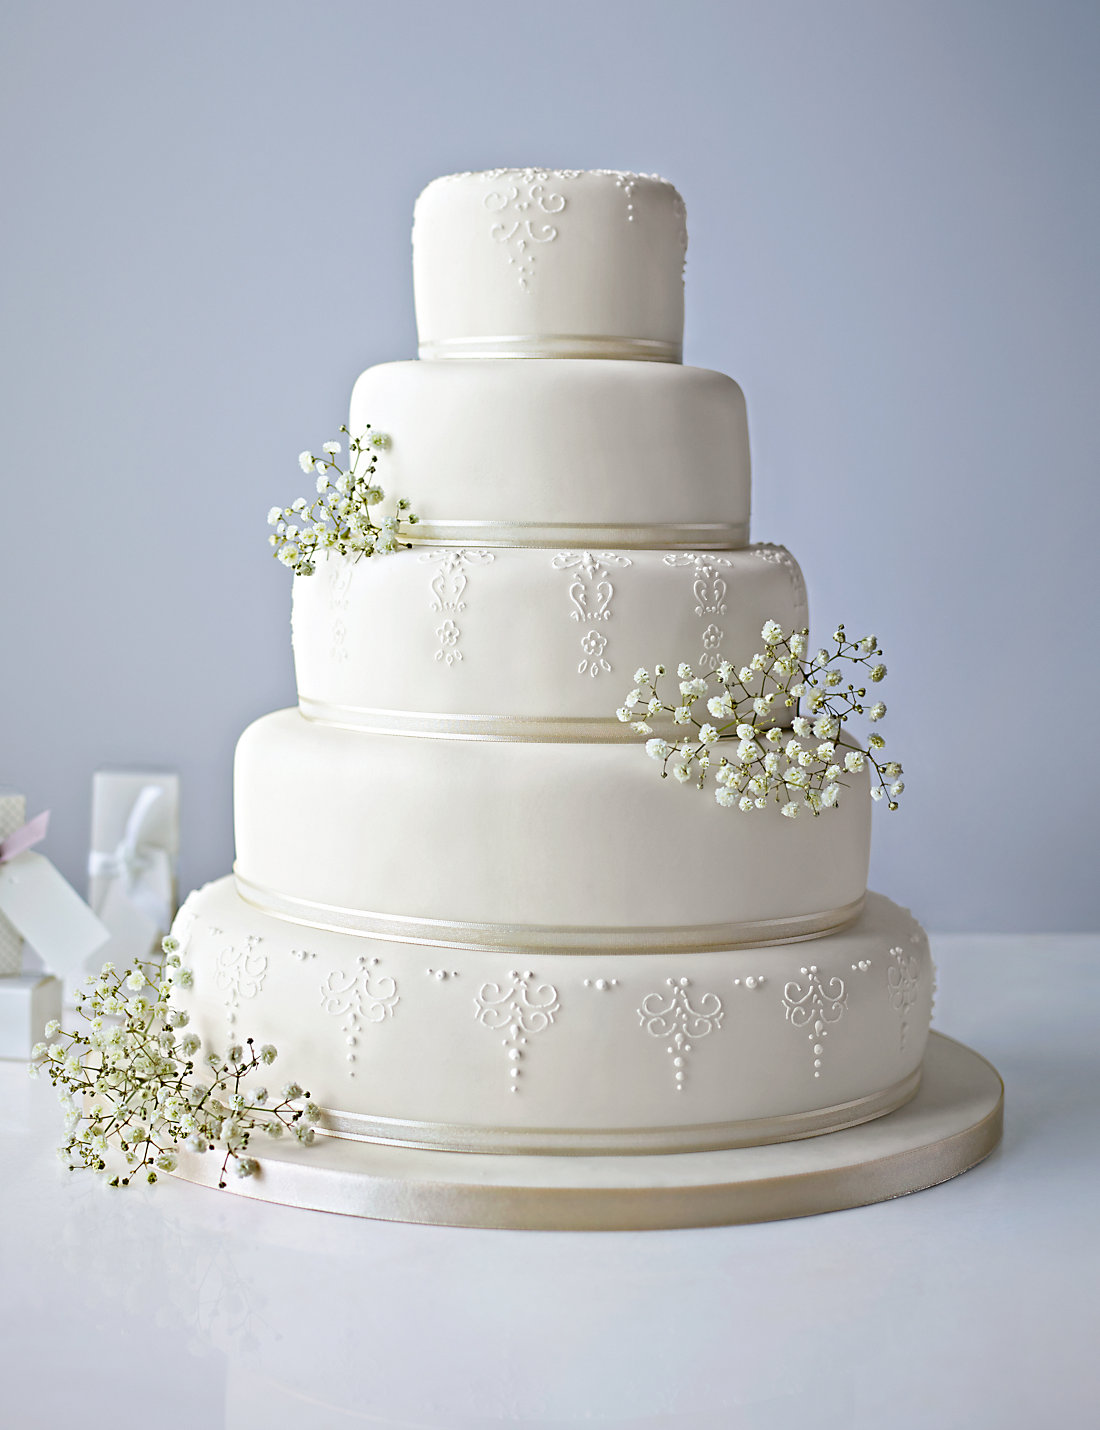 5 Tier White Embroidered Lace Cake Available To Order Until 31st January 2017